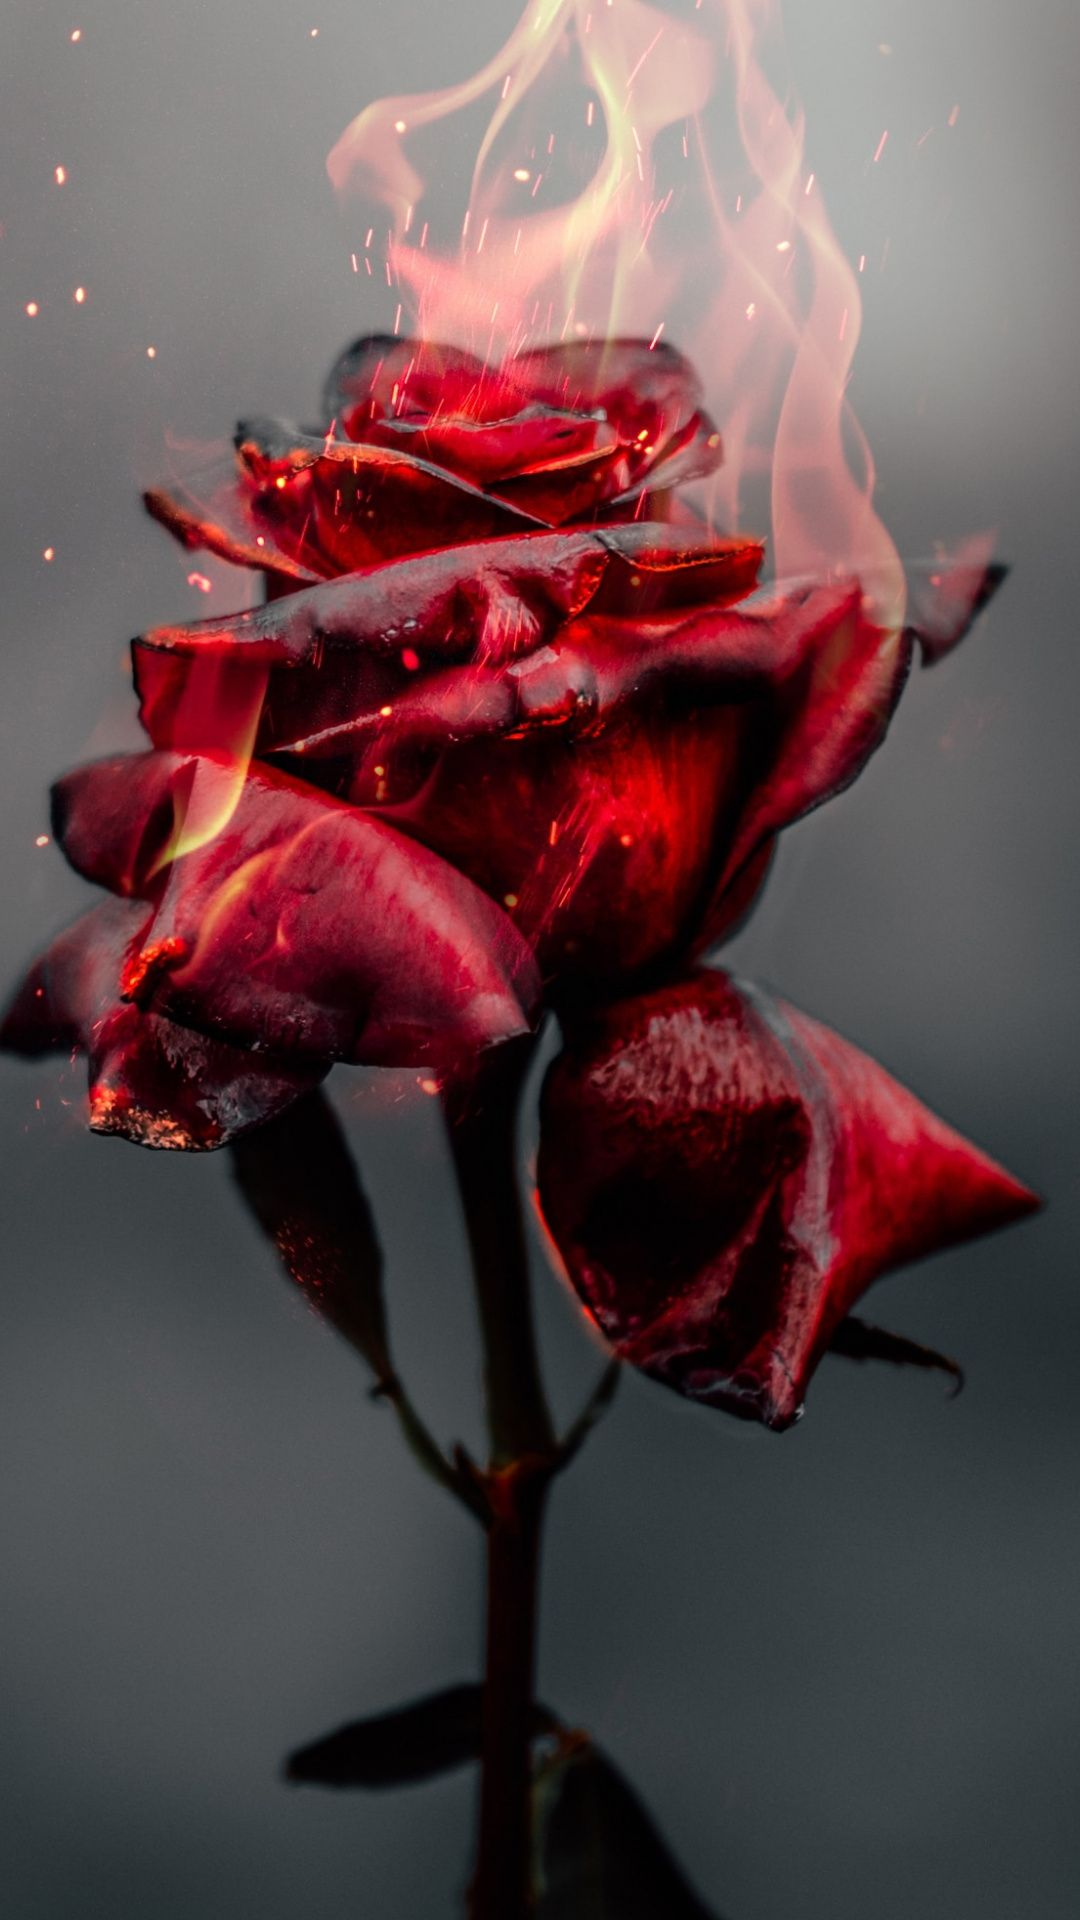 1080x1920 Burning Rose Fire Red Flower Wallpaper Red Flower Wallpaper Red Roses Wallpaper Red Wallpaper